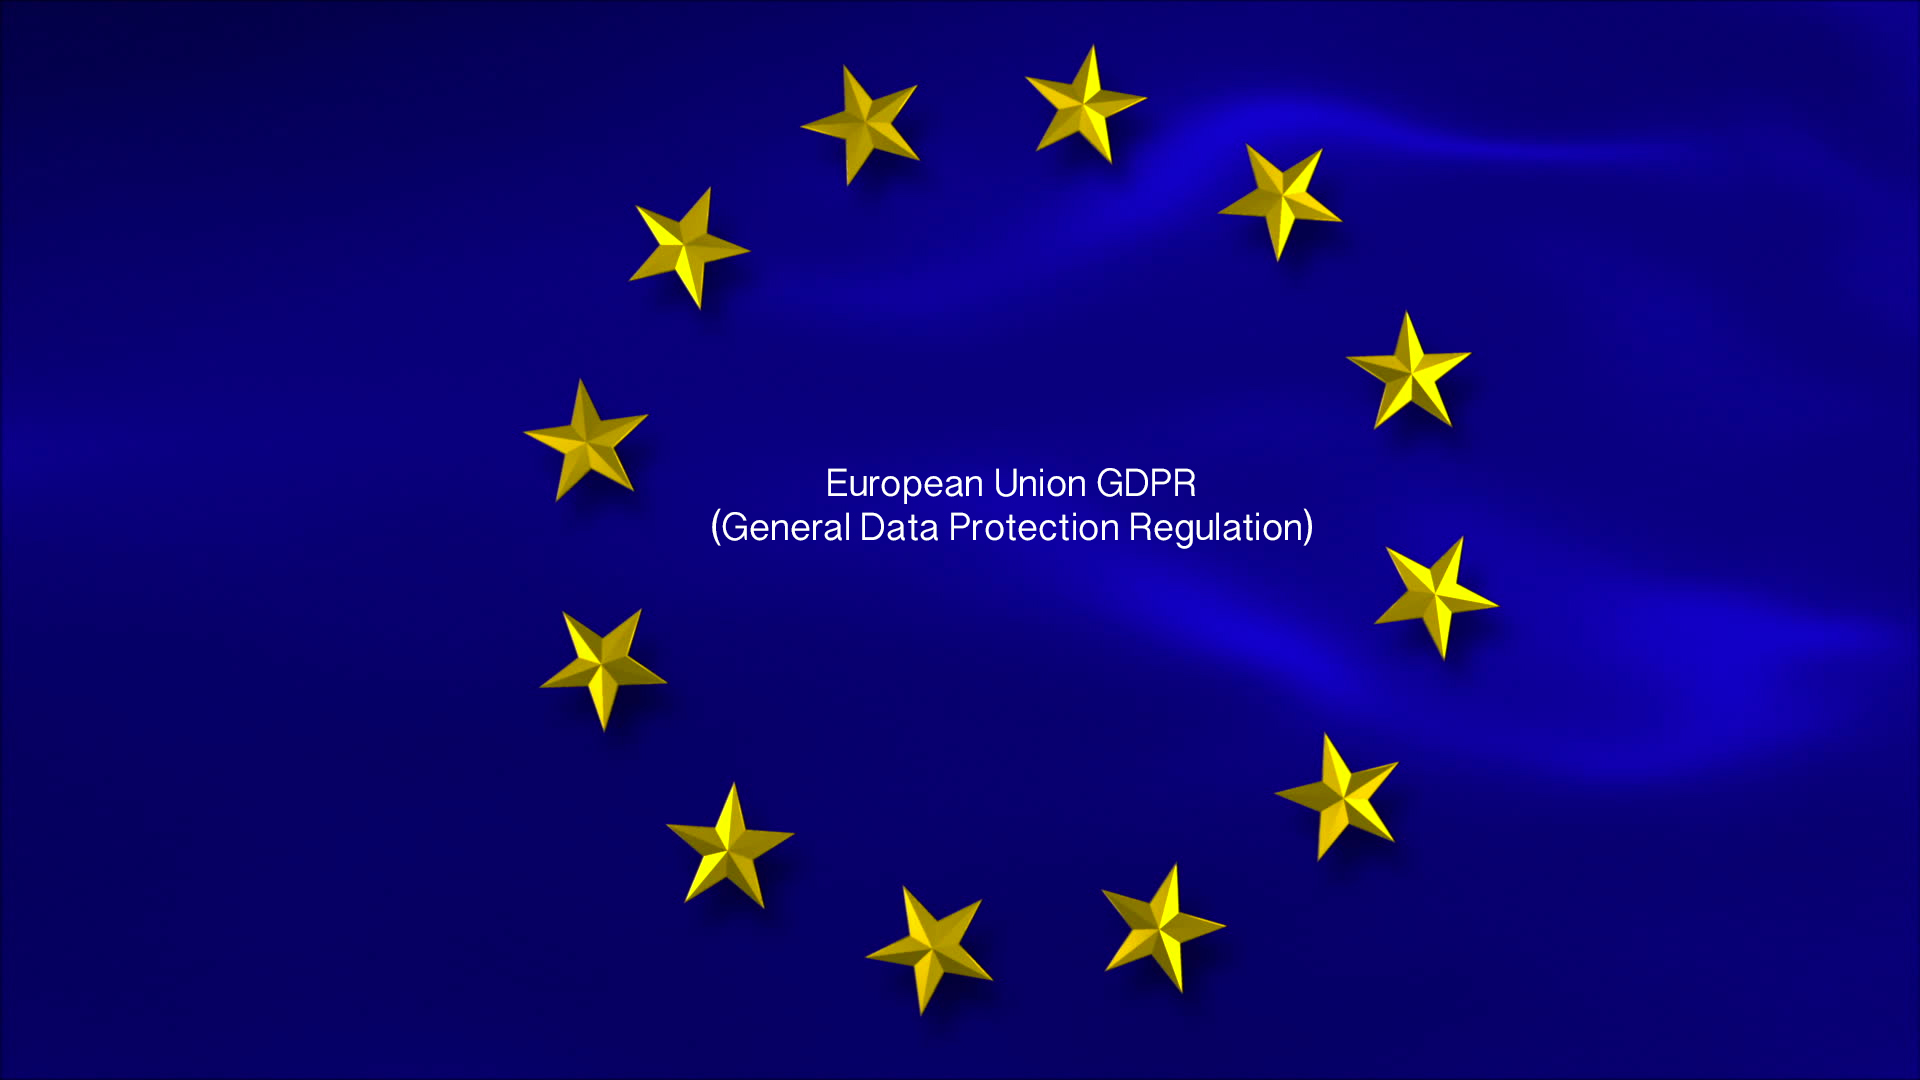 RainMachine complies with European Union GDPR (General Data Protection Regulation)